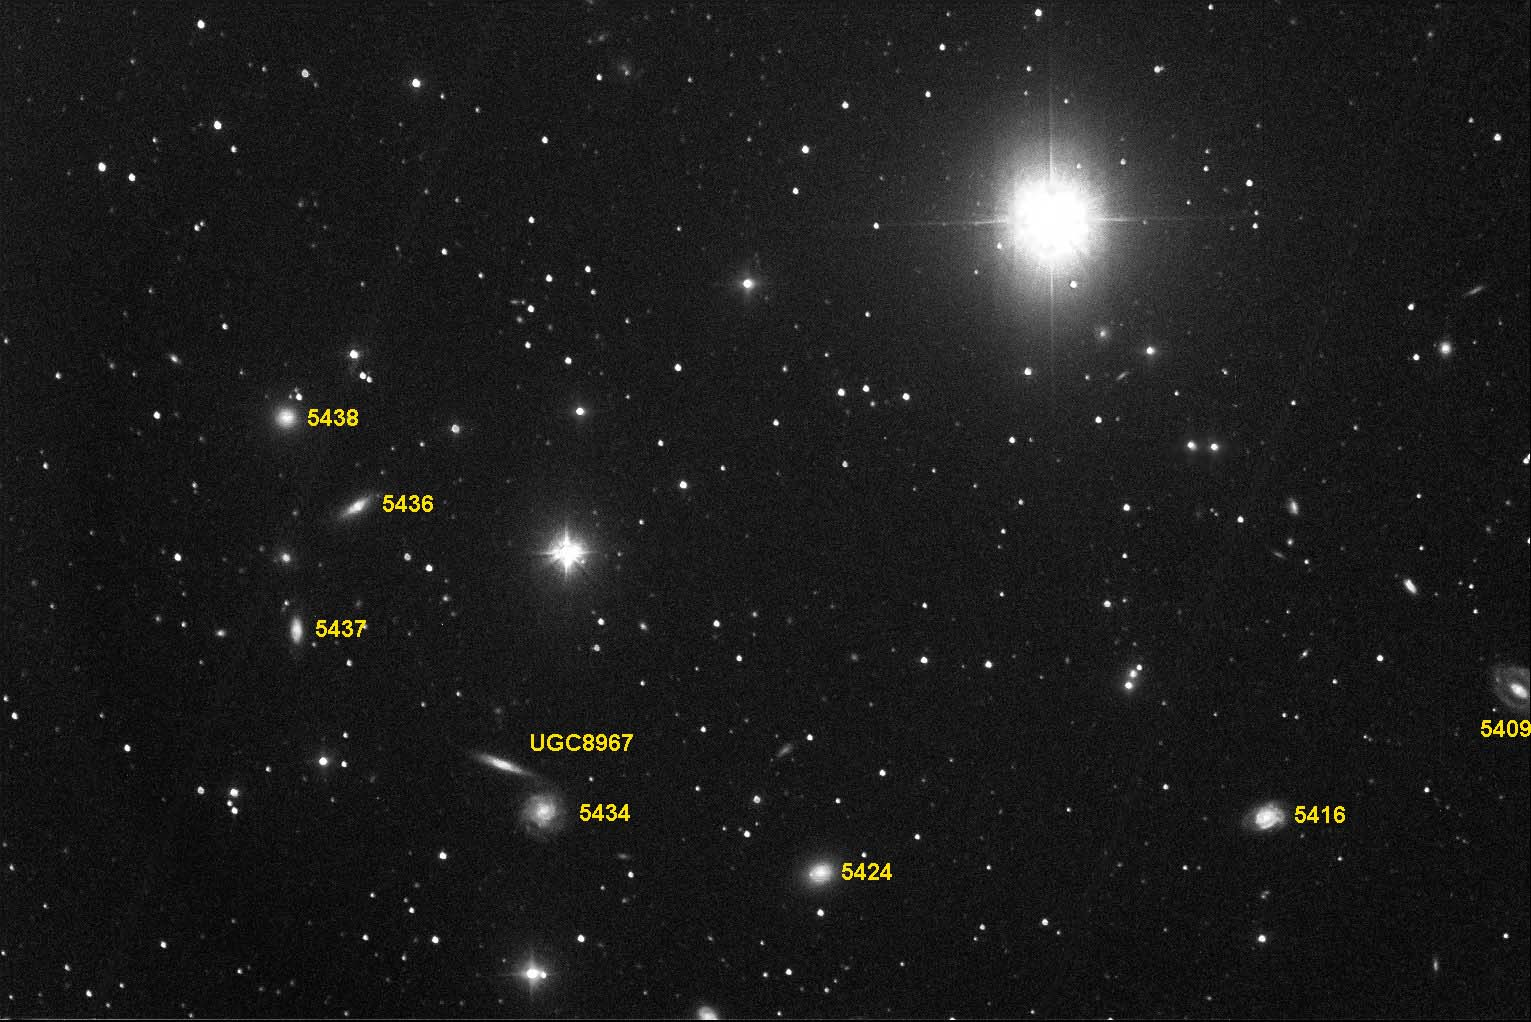 NGC 5434 group finder chart